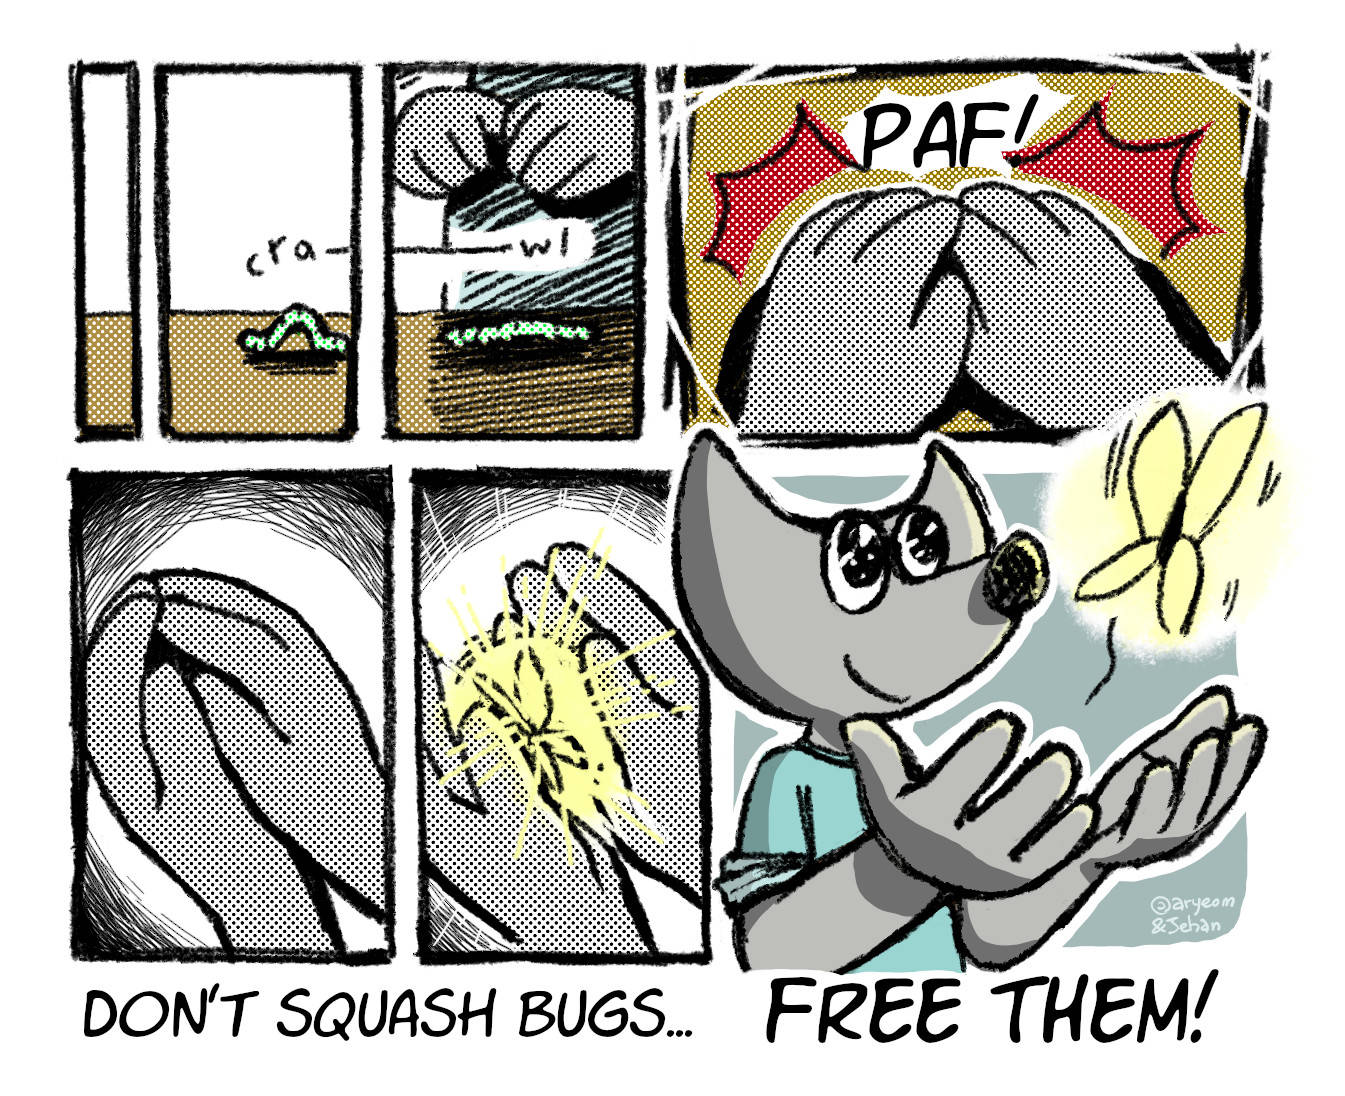 Don't squash bugs, free them, by Aryeom